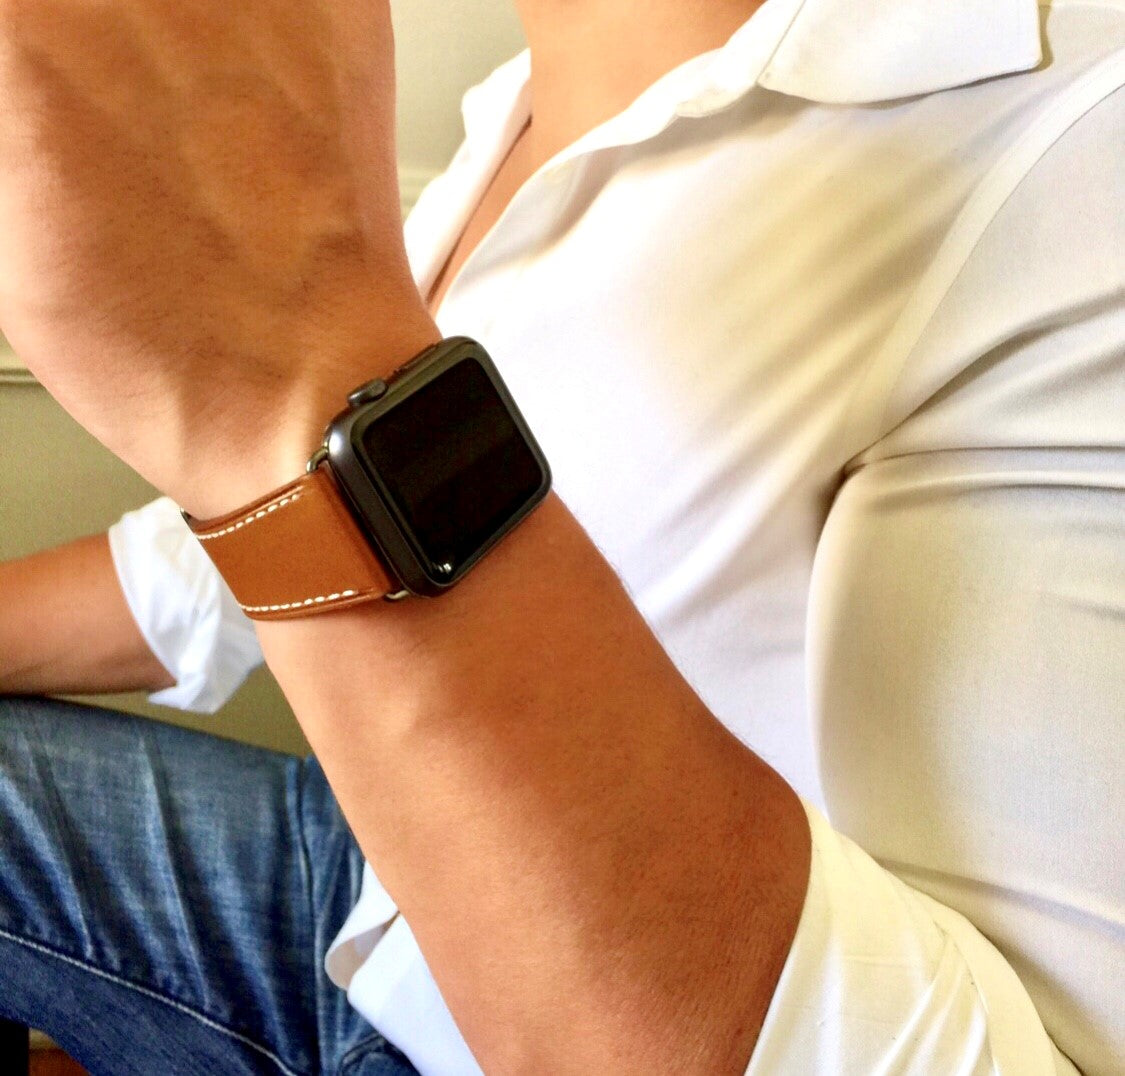 Juxli Home Chilli Brown  Apple Watch Leather Replacement Single Tour Band worn by man with White Shirt